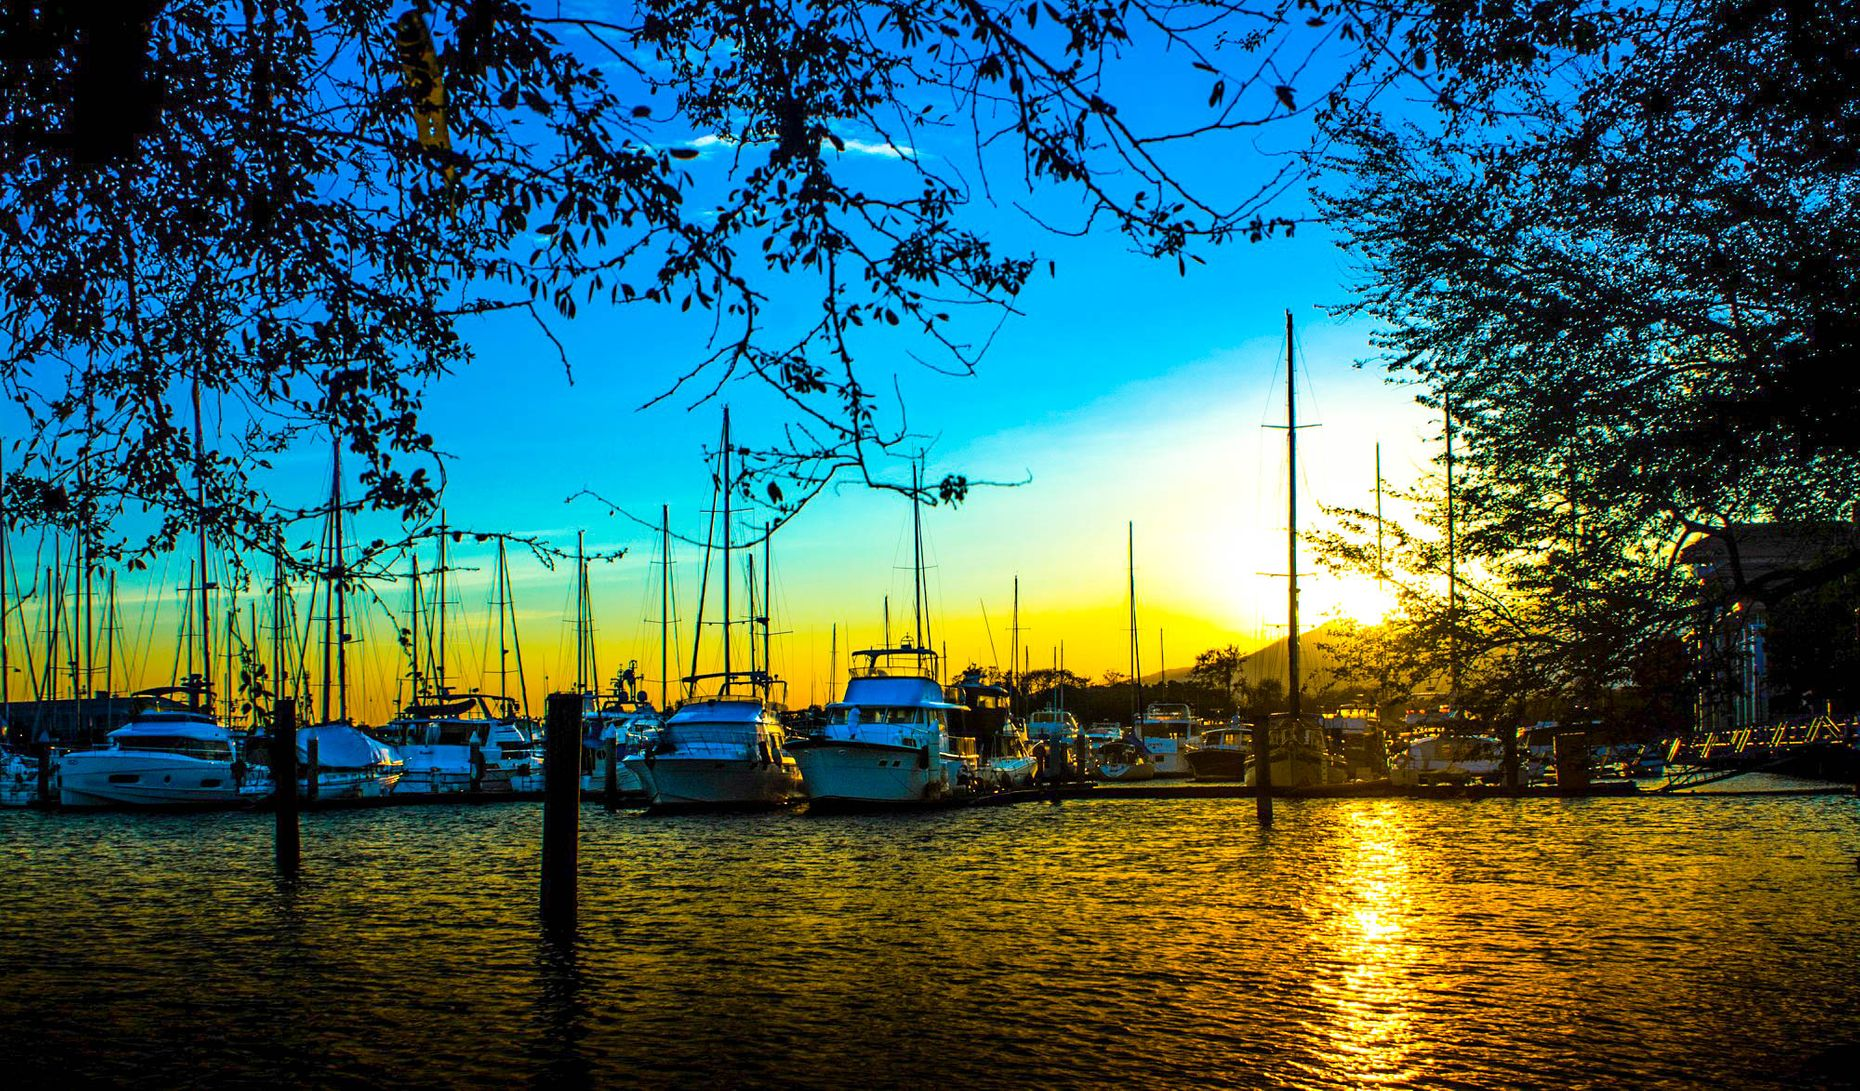 Row of yachts moored on a bay in Subic, one of the best places to visit in the Philippines